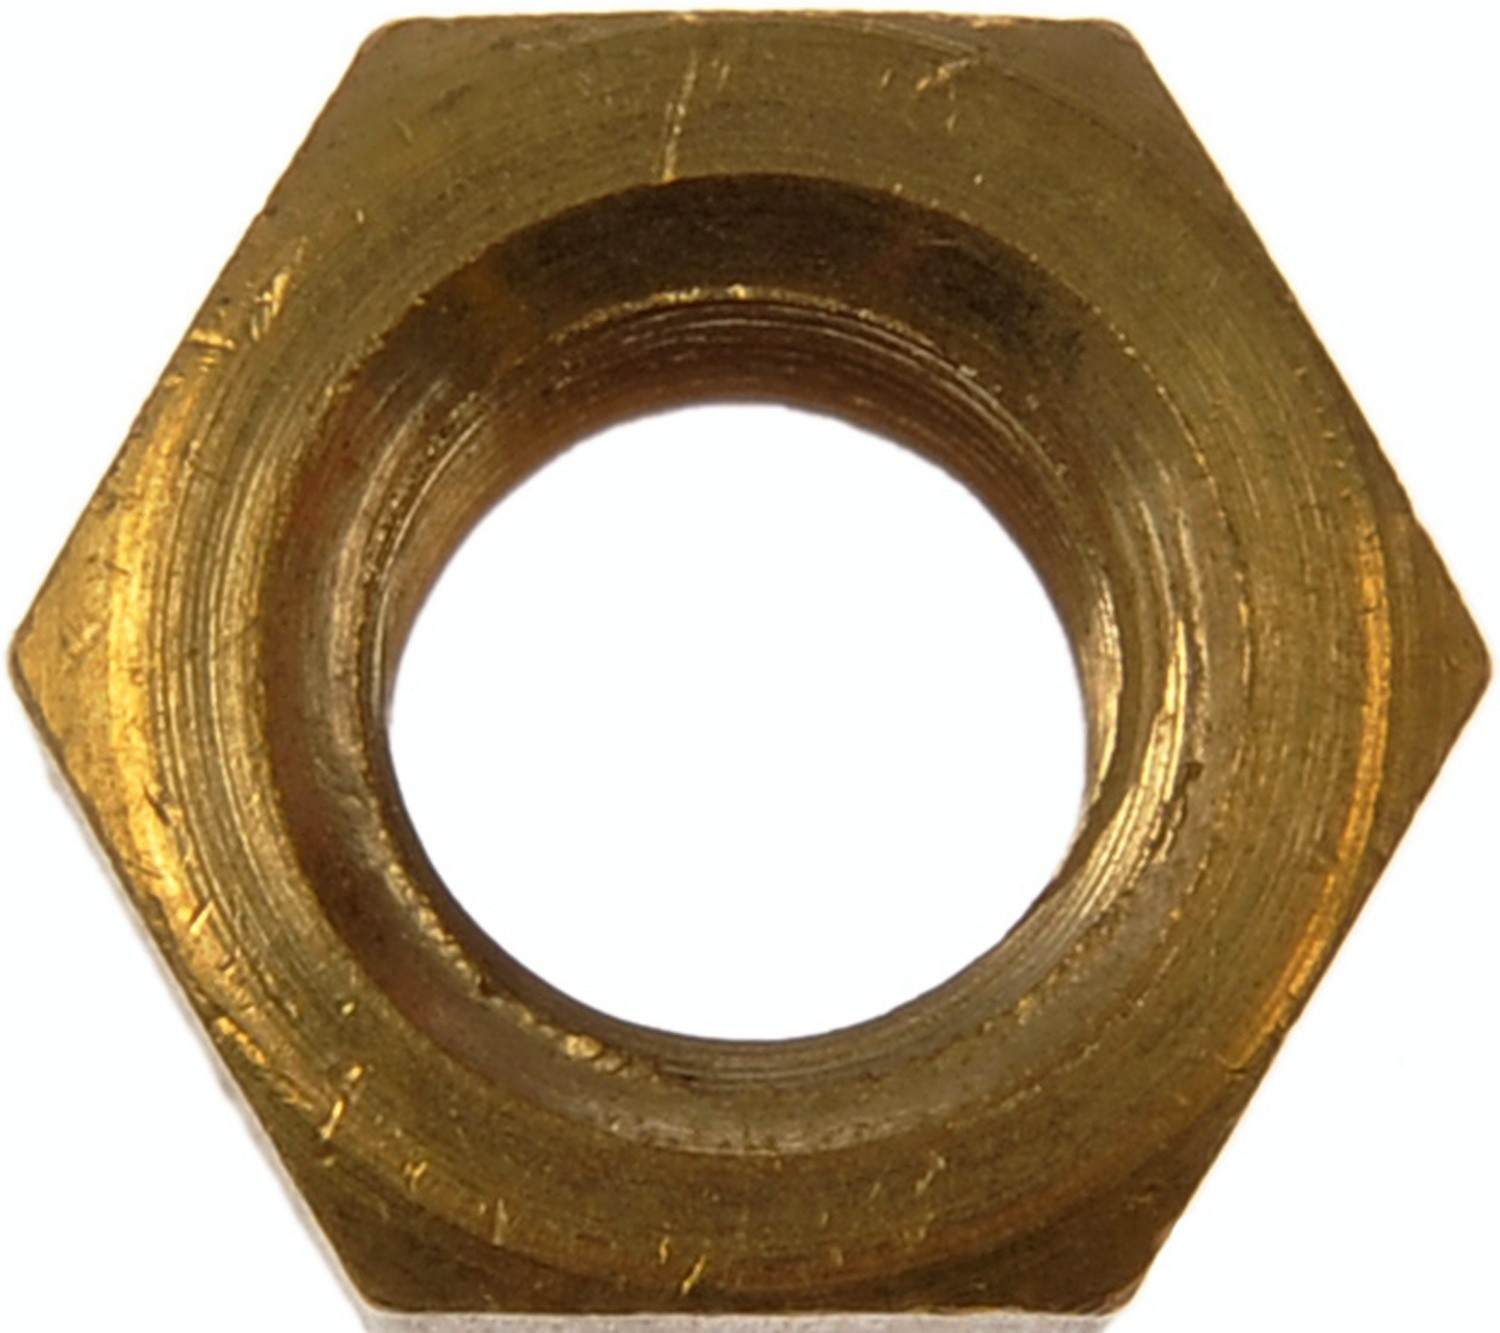 DORMAN - AUTOGRADE - Exhaust Manifold Nut - DOC 680-104